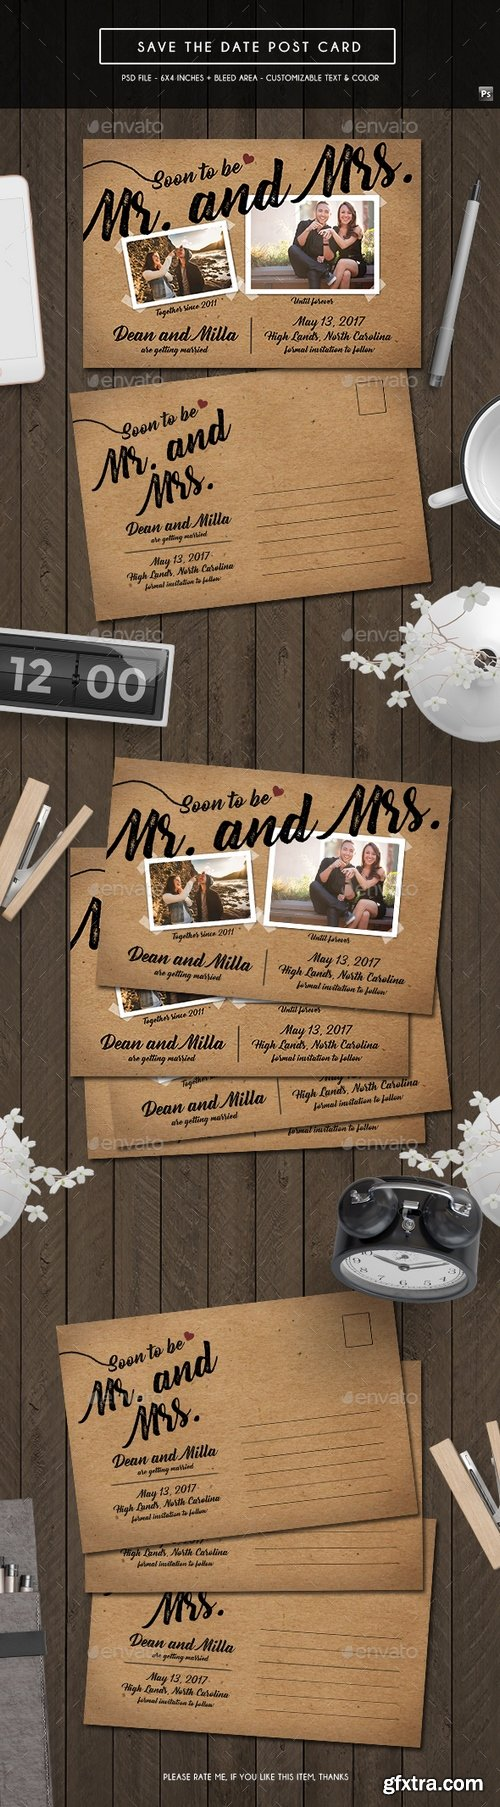 Graphicriver - Save the Date Post Card 19337197